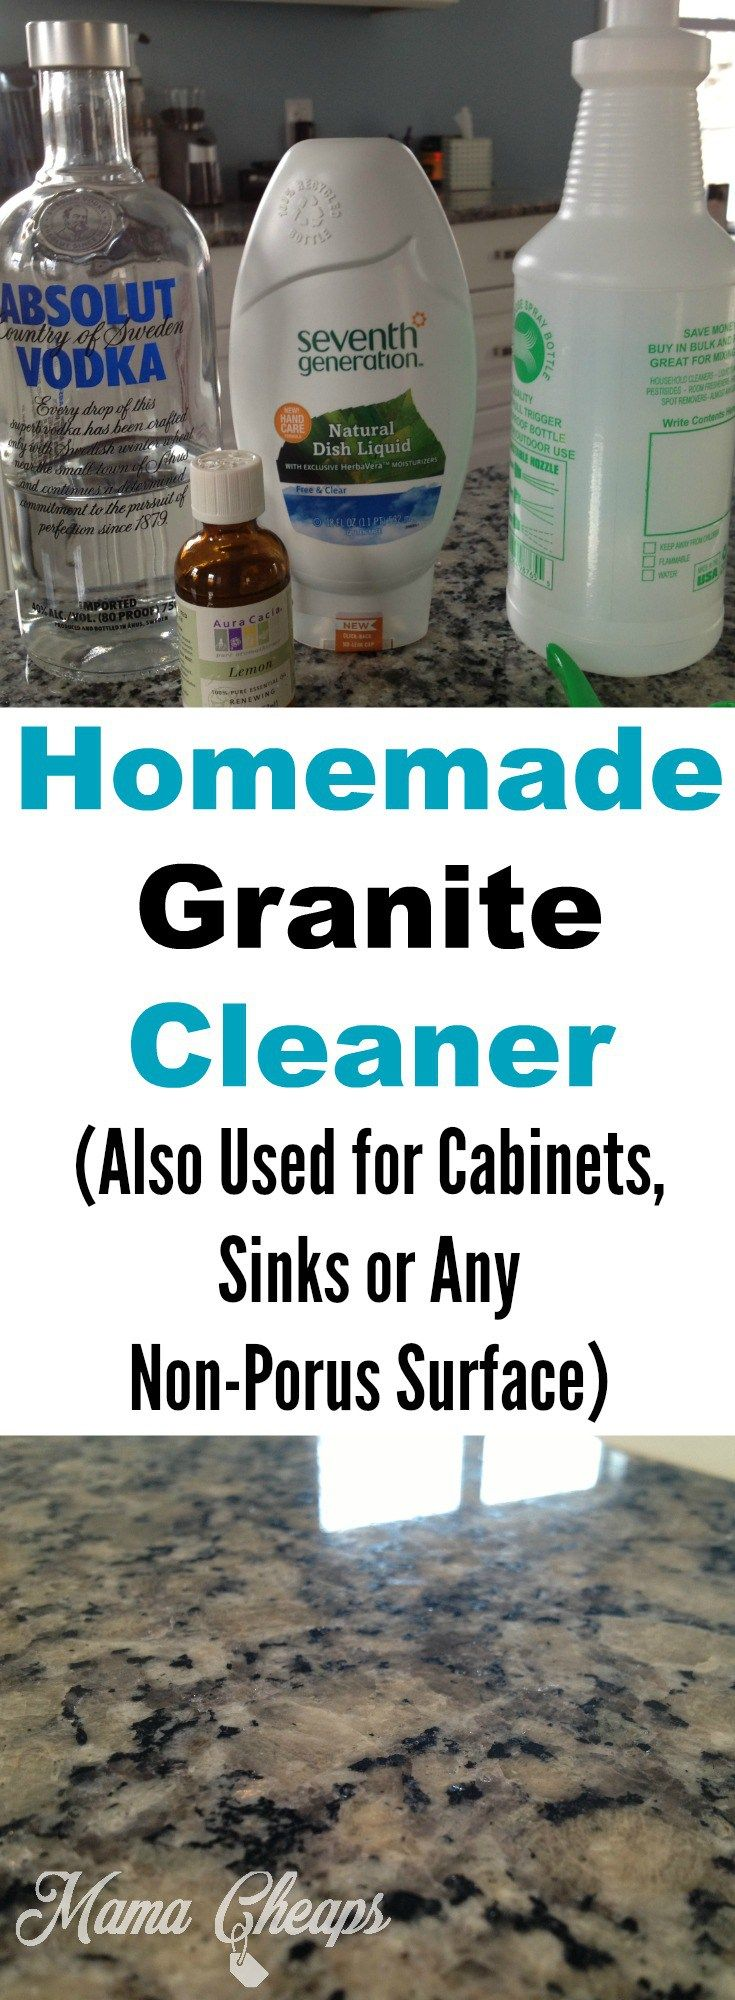 Diy Homemade Granite Cleaner Also Used For Cabinets